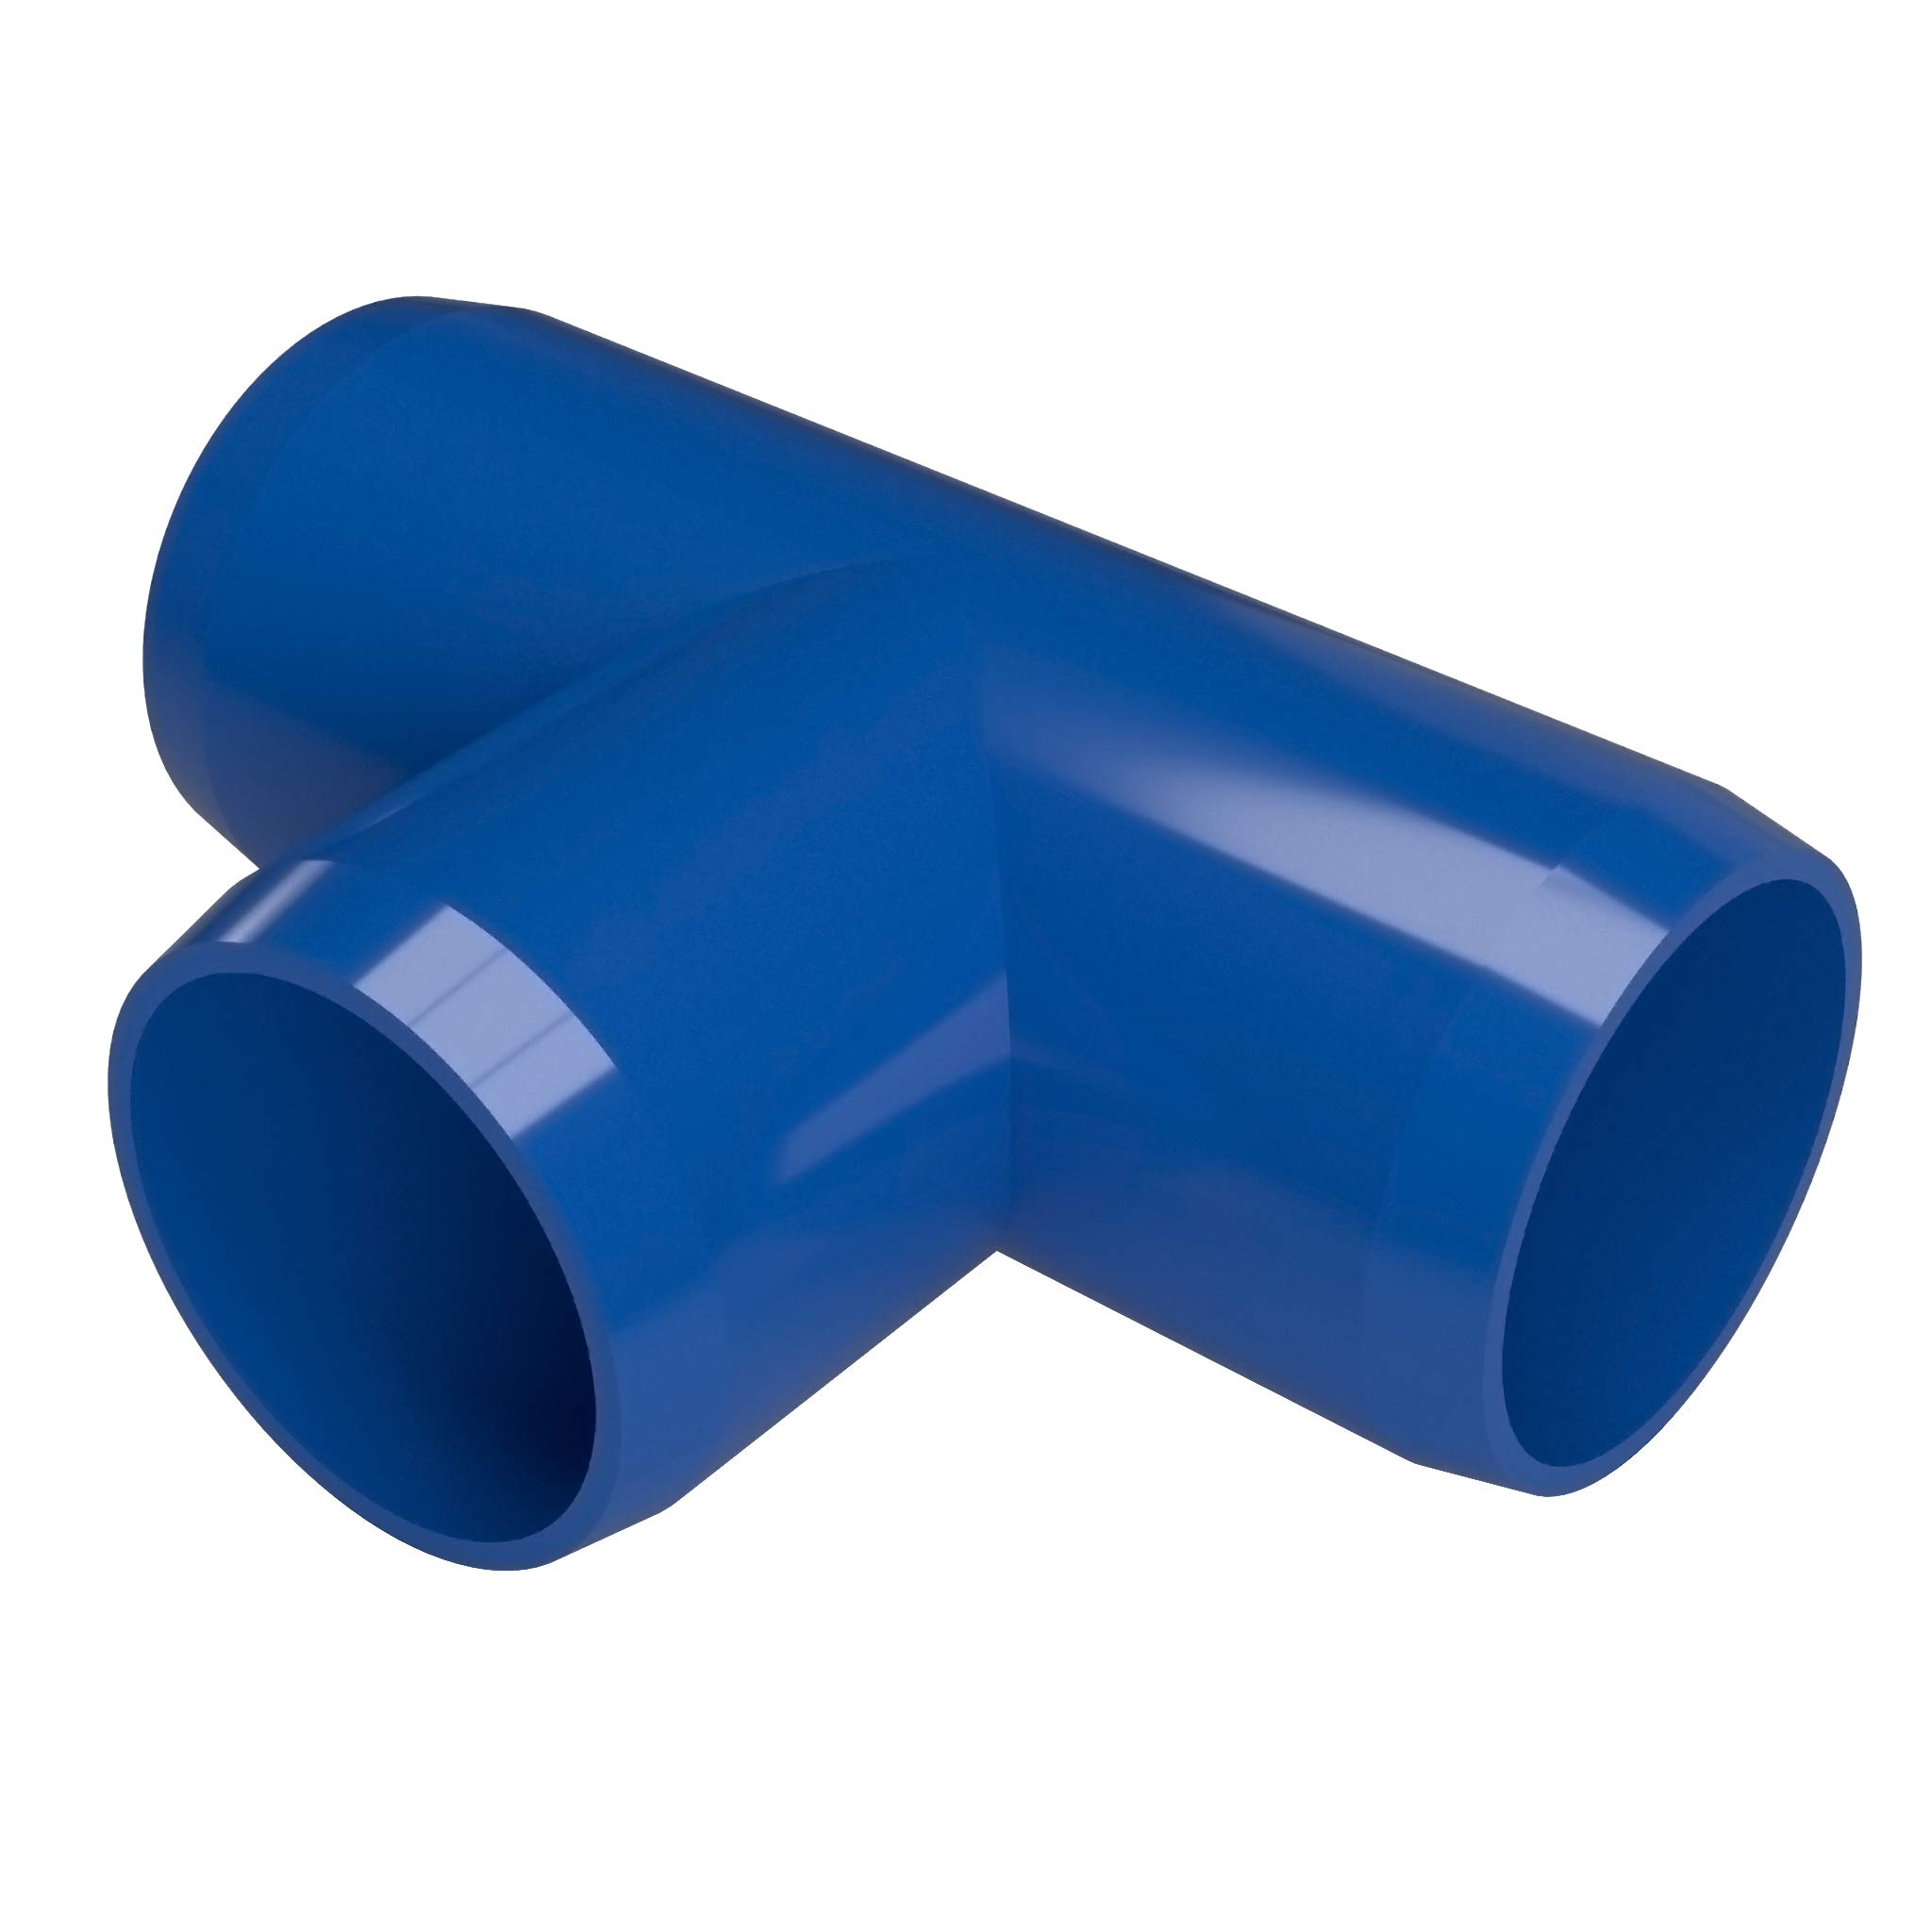 FORMUFIT F012TEE-BL-10 Tee PVC Fitting, Furniture Grade, 1/2'' Size, Blue (Pack of 10)